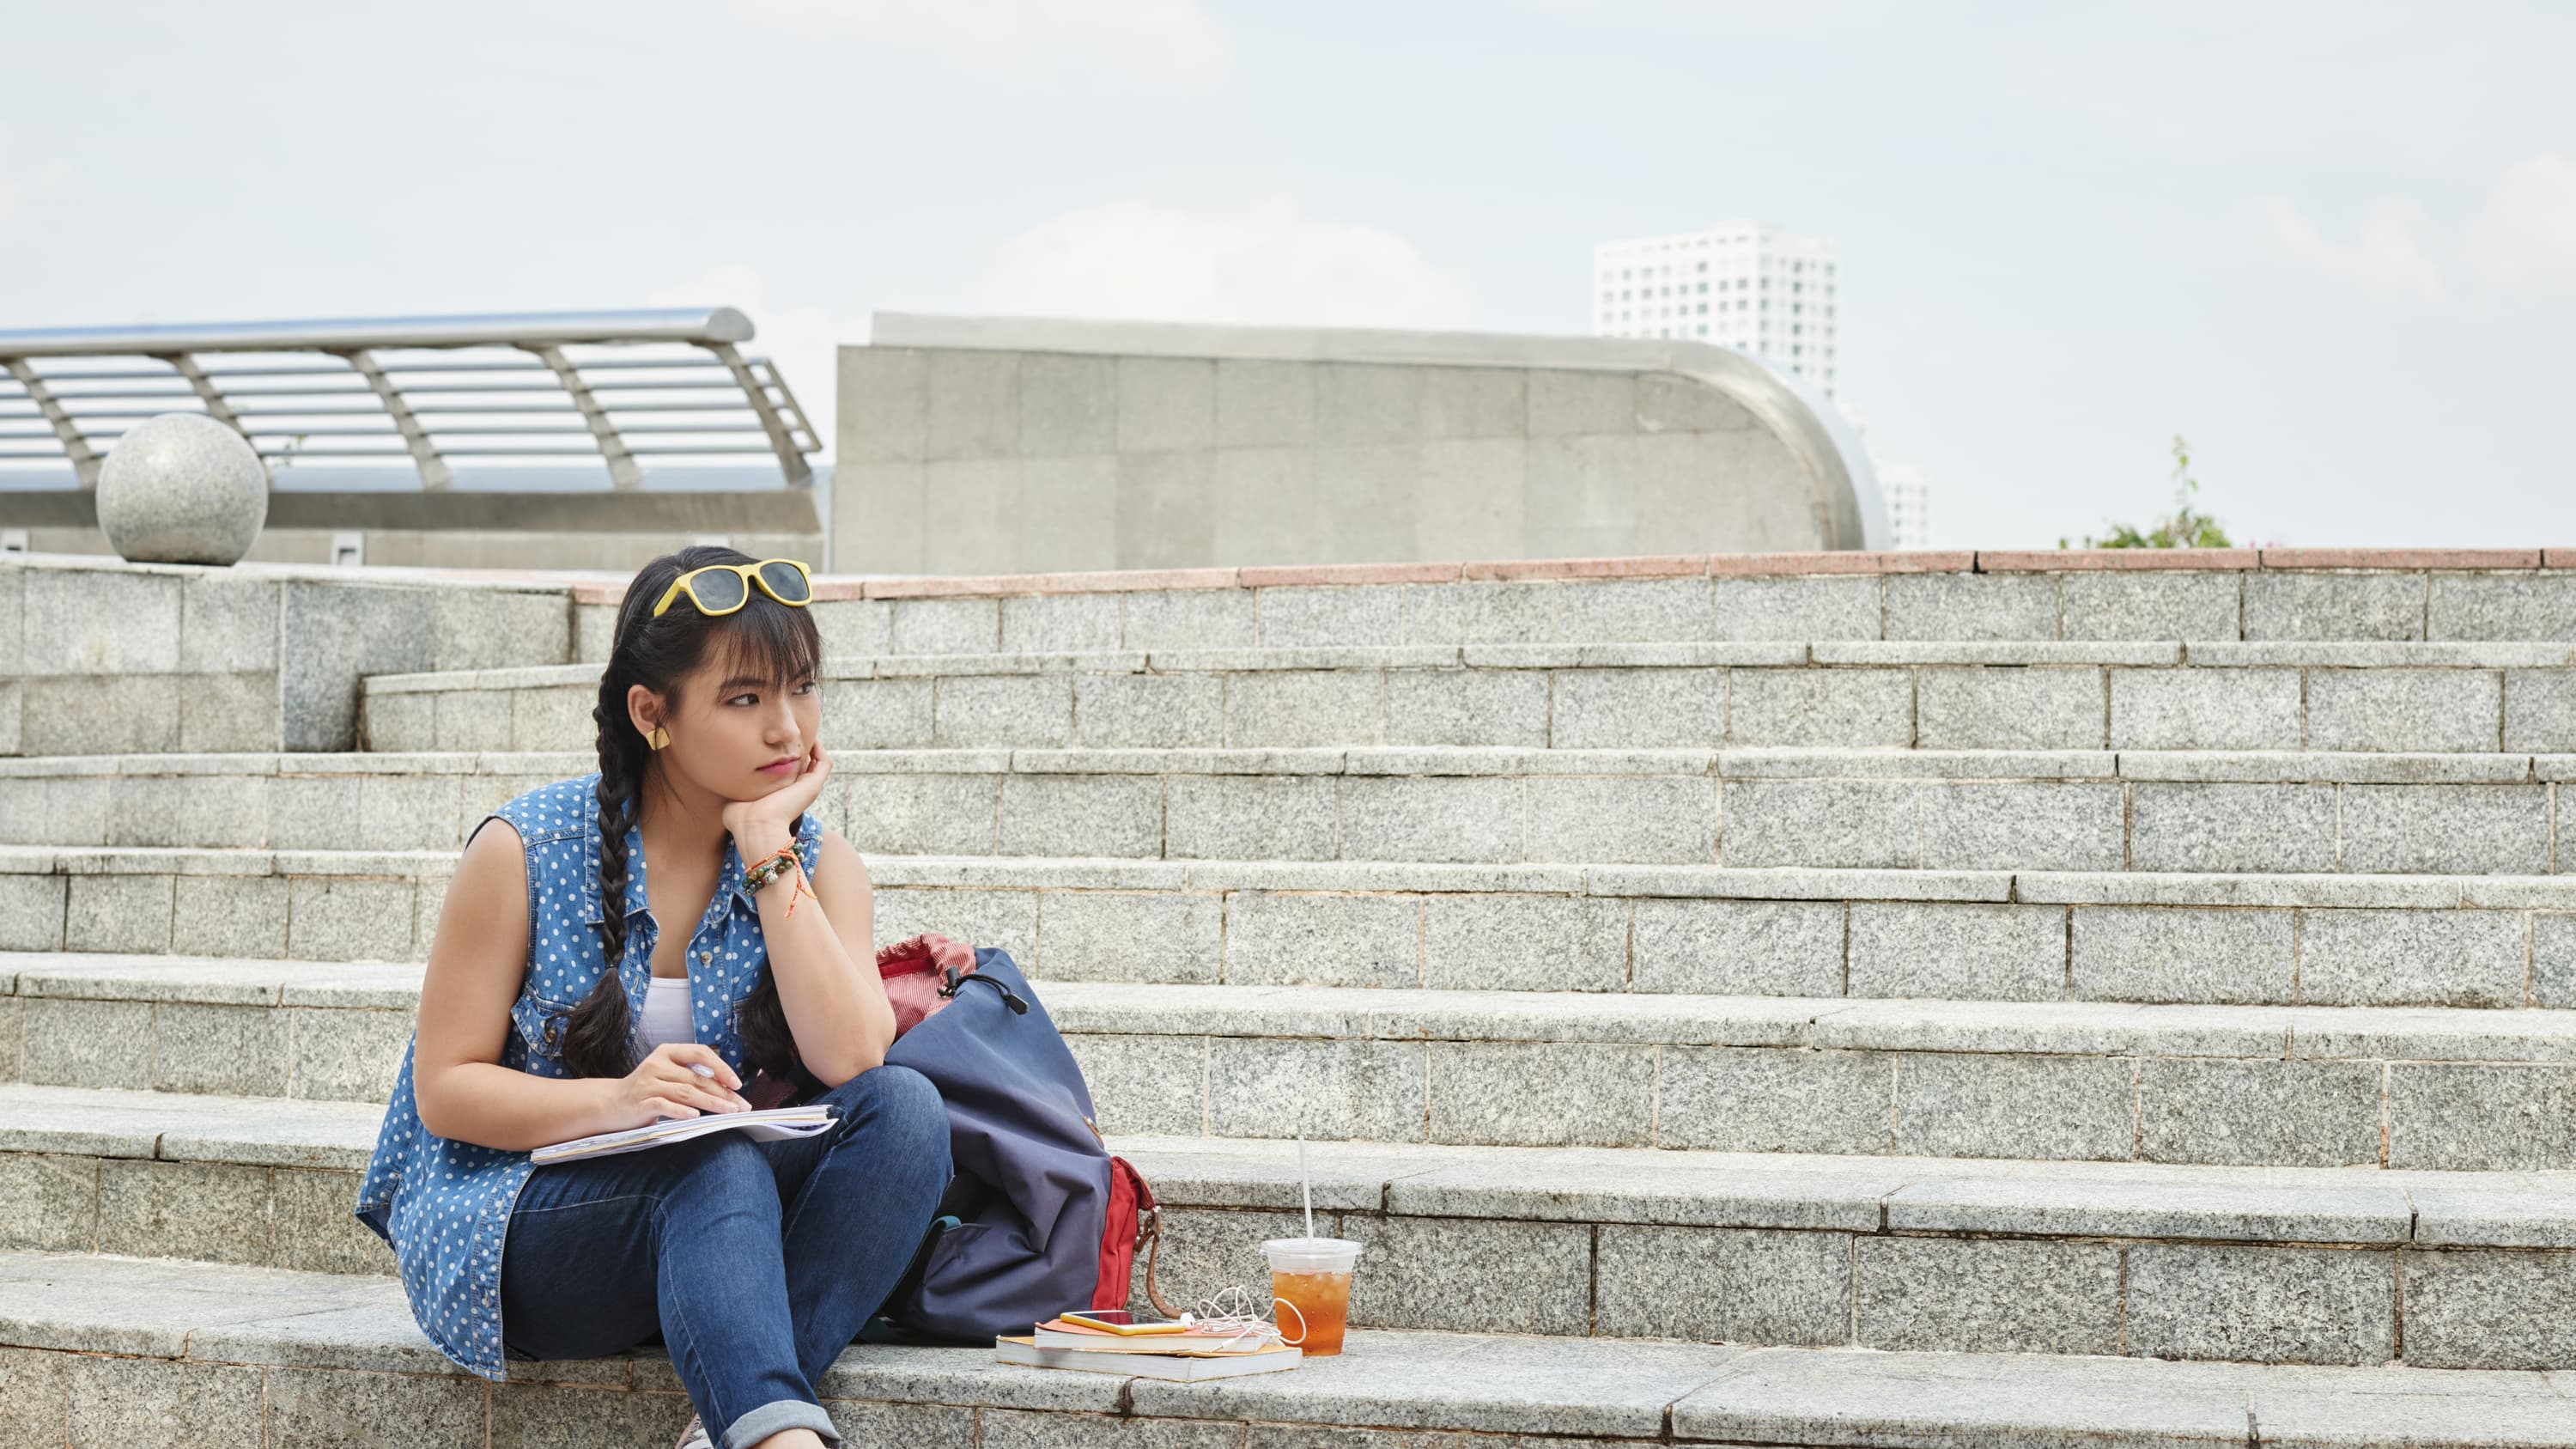 A young woman sits outside on stairs, possibly concerned about sarcoma